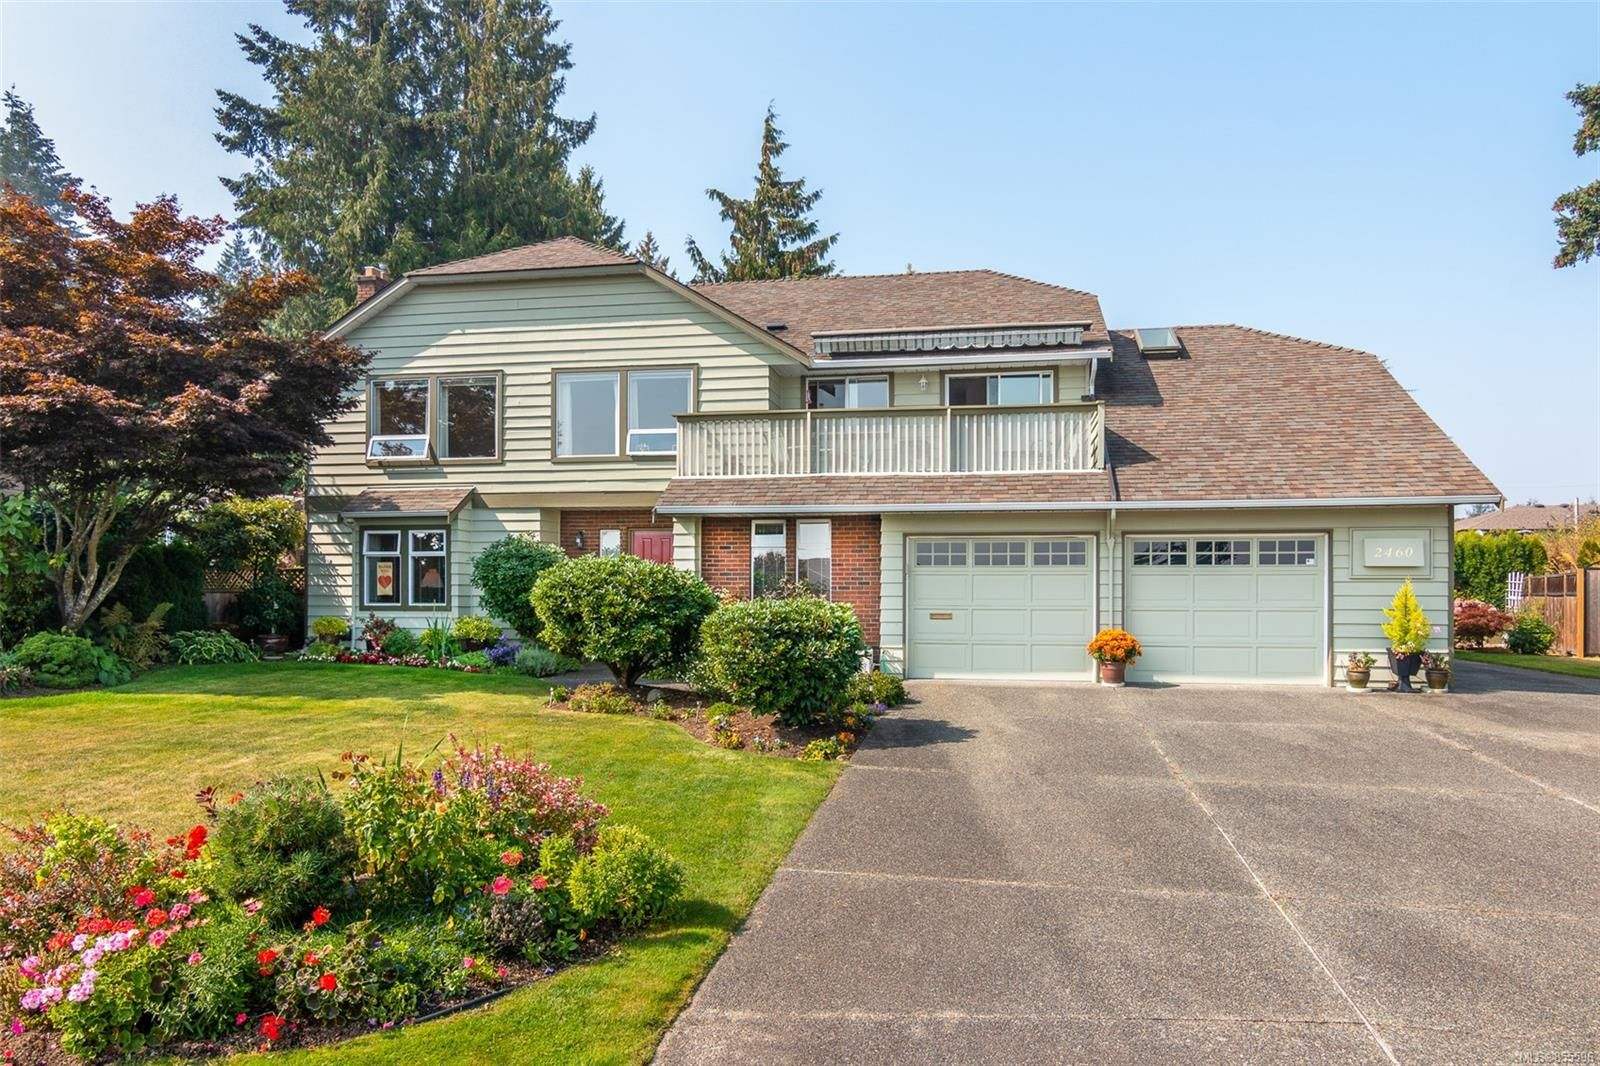 Main Photo: 2460 Costa Vista Pl in : CS Tanner House for sale (Central Saanich)  : MLS®# 855596